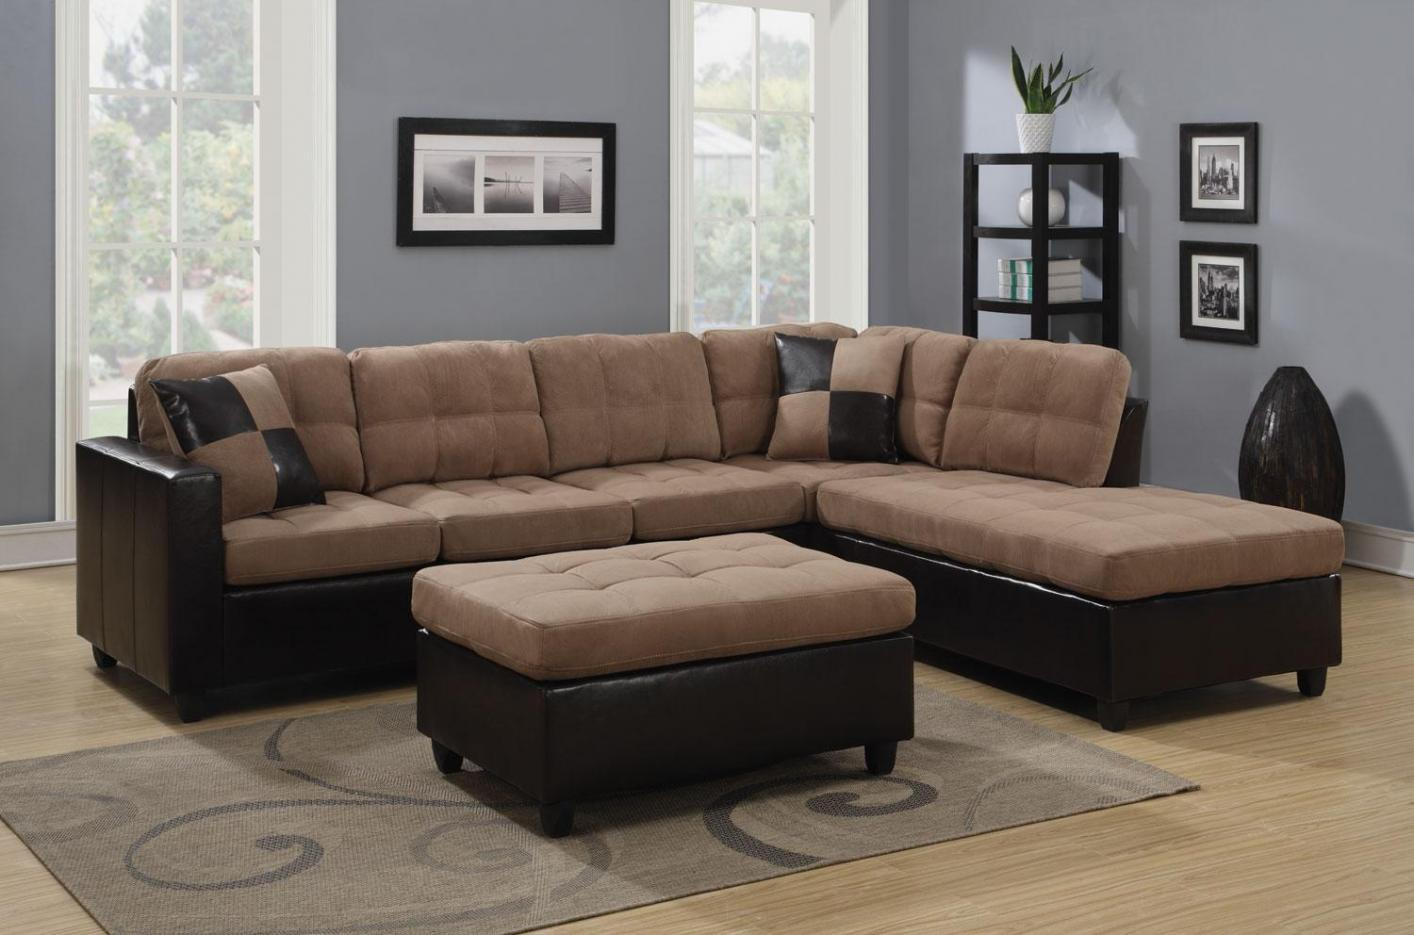 Mallory beige leather sectional sofa steal a sofa for Sectional couch